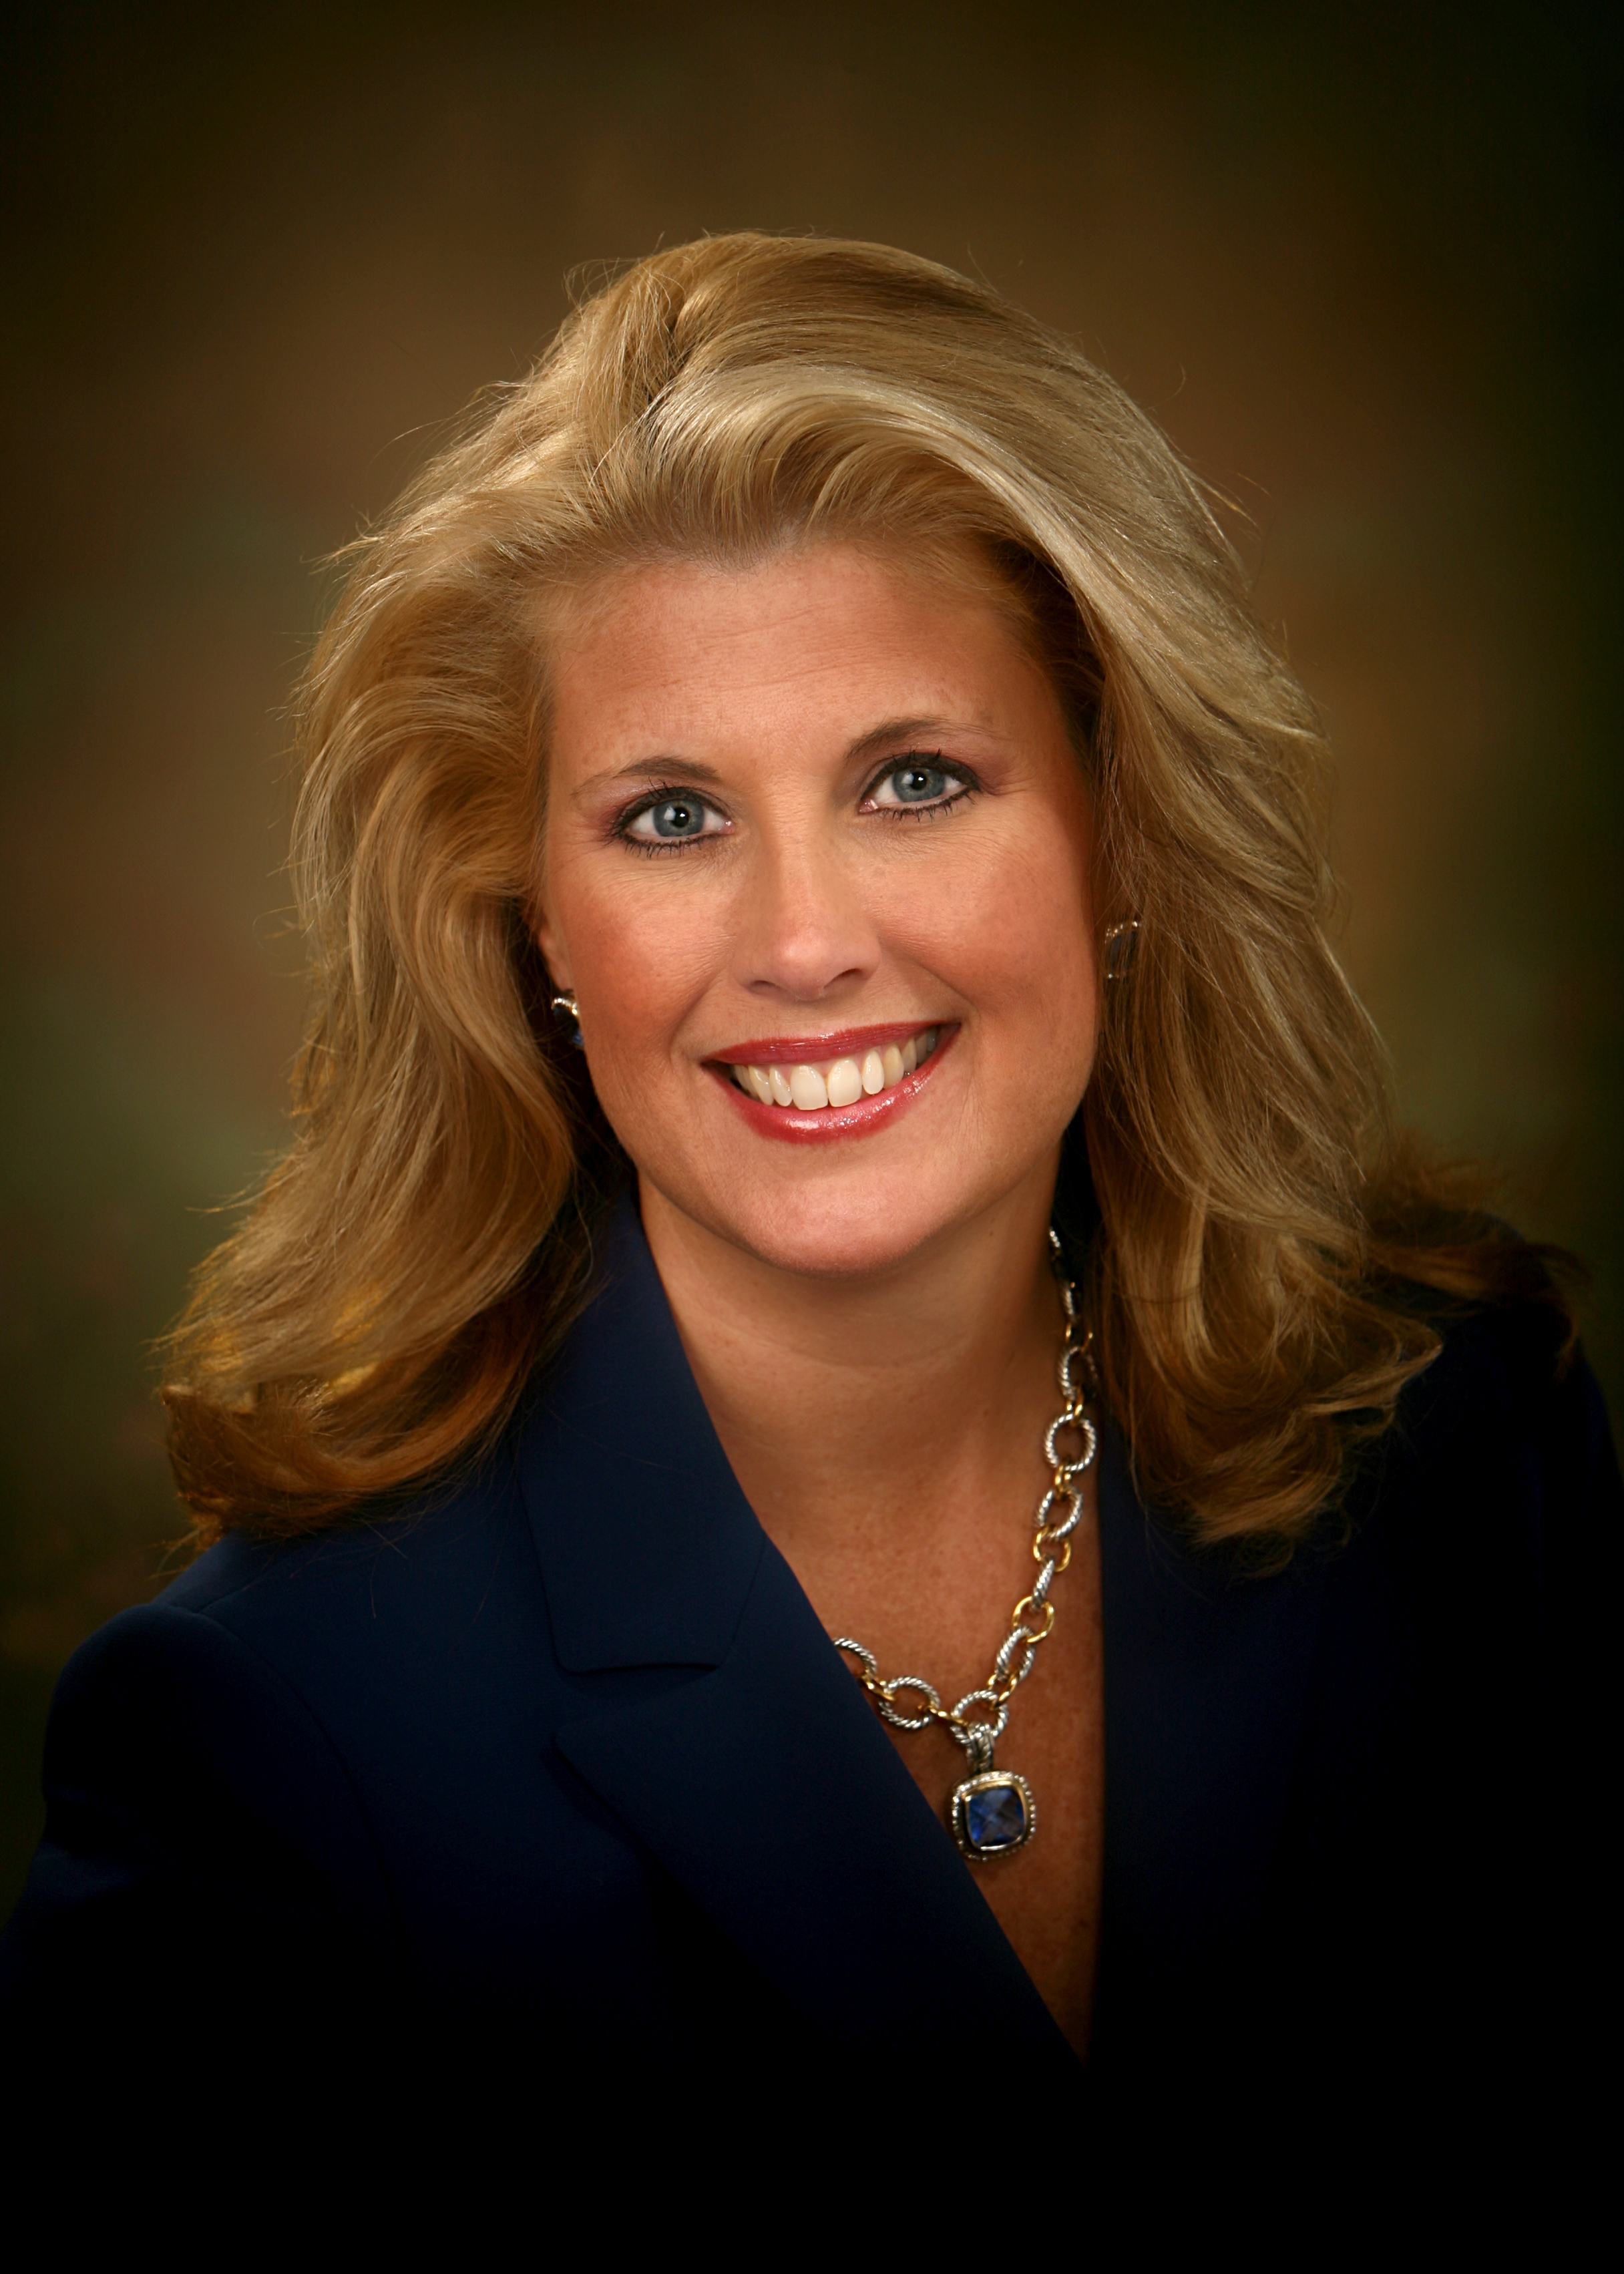 Dawn Busick-Drinkard,  Missouri Community College Association    @wdprof   Dawn Busick-Drinkard serves as the Missouri Community College Association statewide grants director for three rounds of Missouri's consortium TAACCCT Grants. Prior she has served in positions such as the Executive Director of Ozarks Technical Community College, Center for Workforce Development, and as the State of Missouri's Public Workforce System Executive Director.